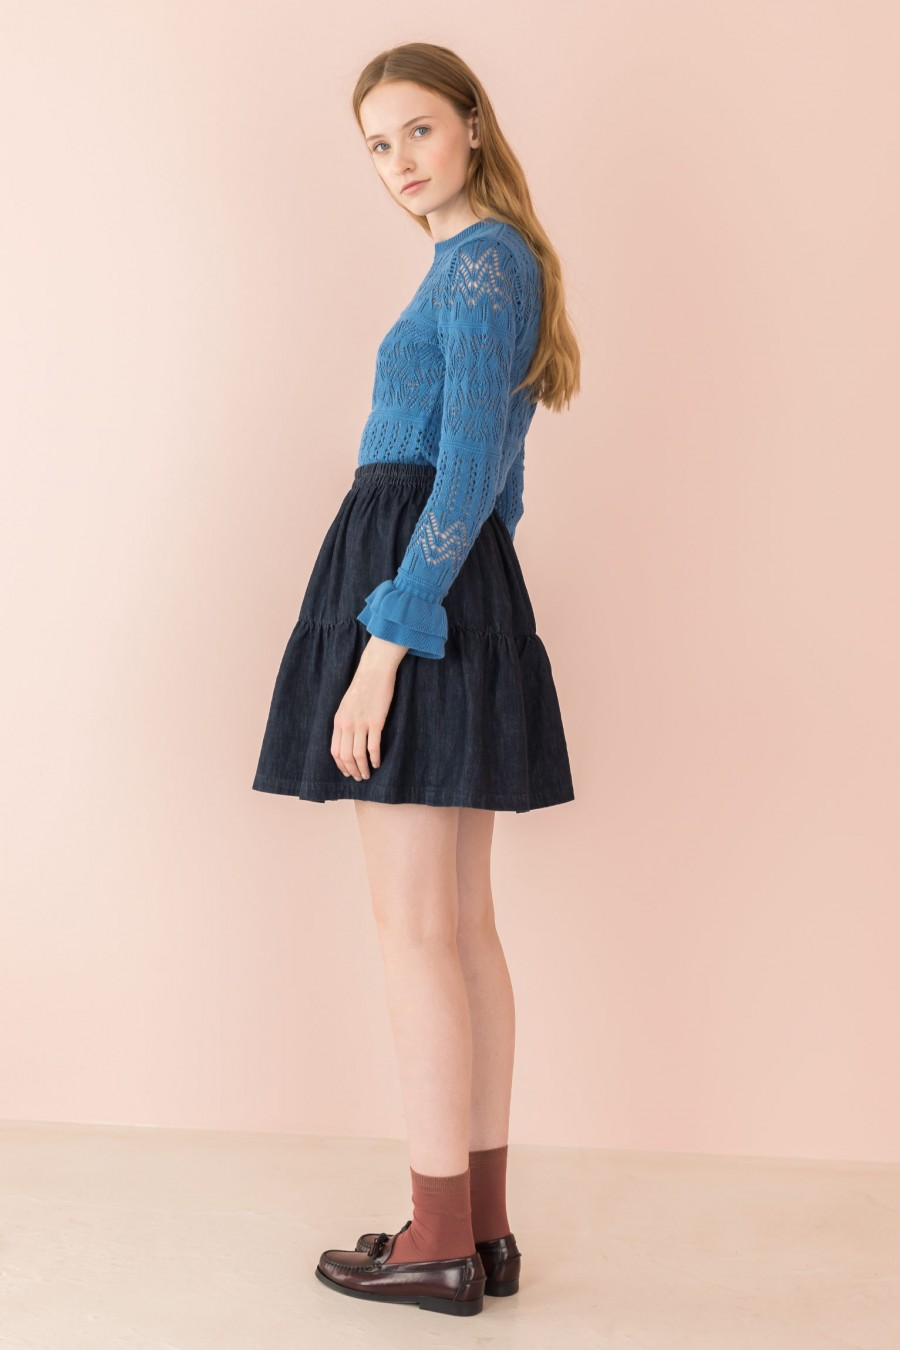 cornflower blue shirt with long sleeves